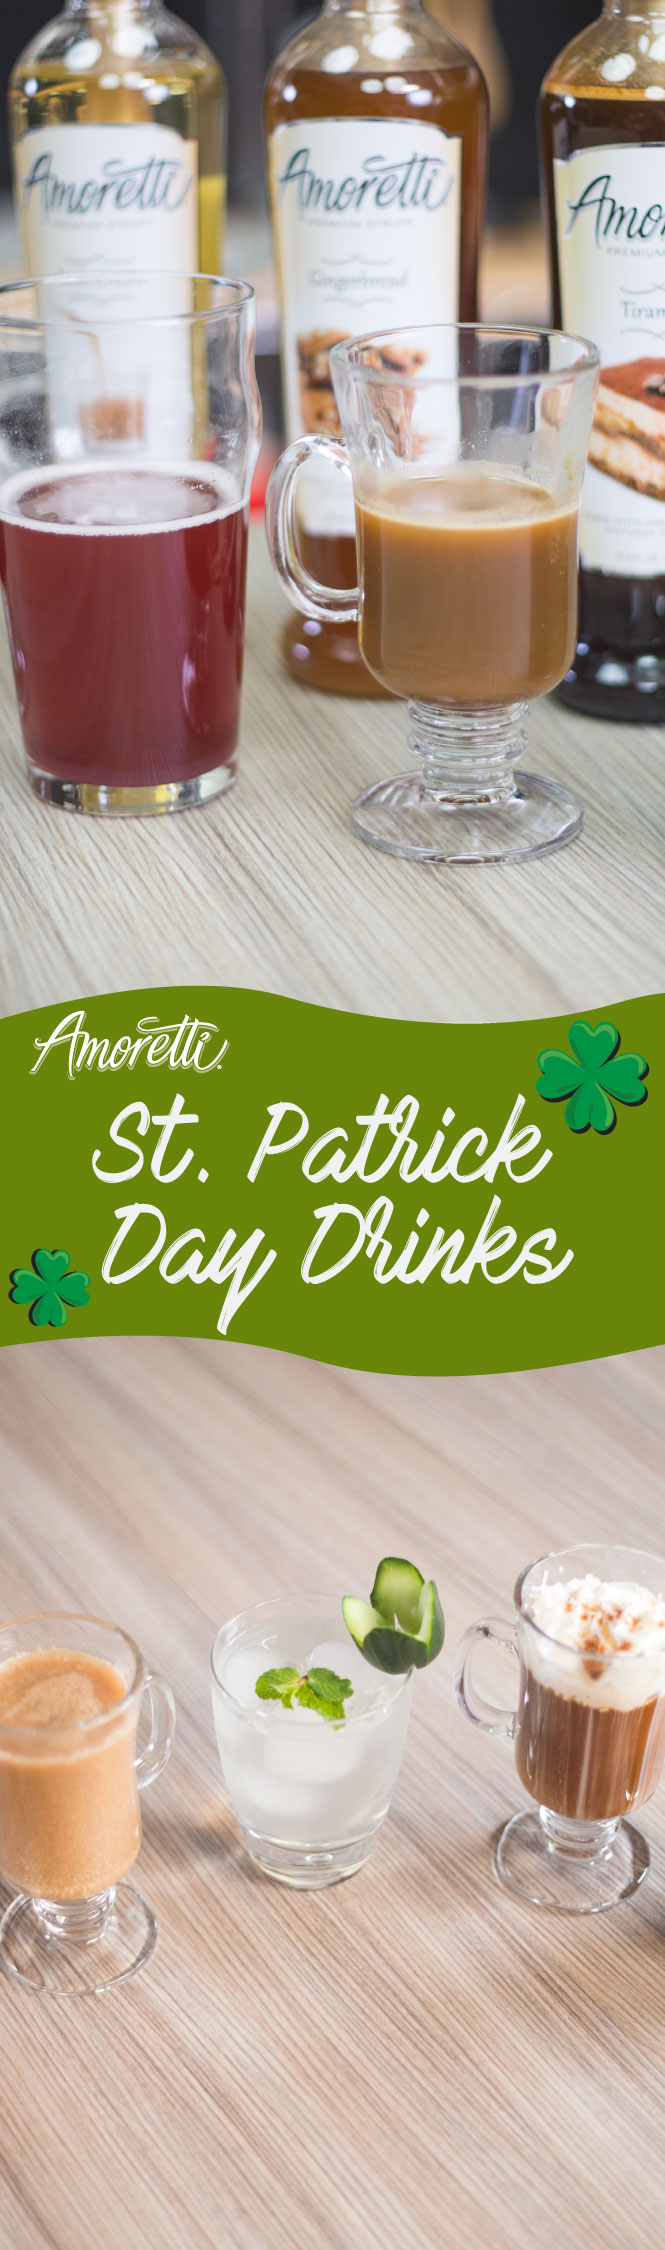 St. Patrick Day's is never the same without some over the top creative and tasty cocktail drinks!